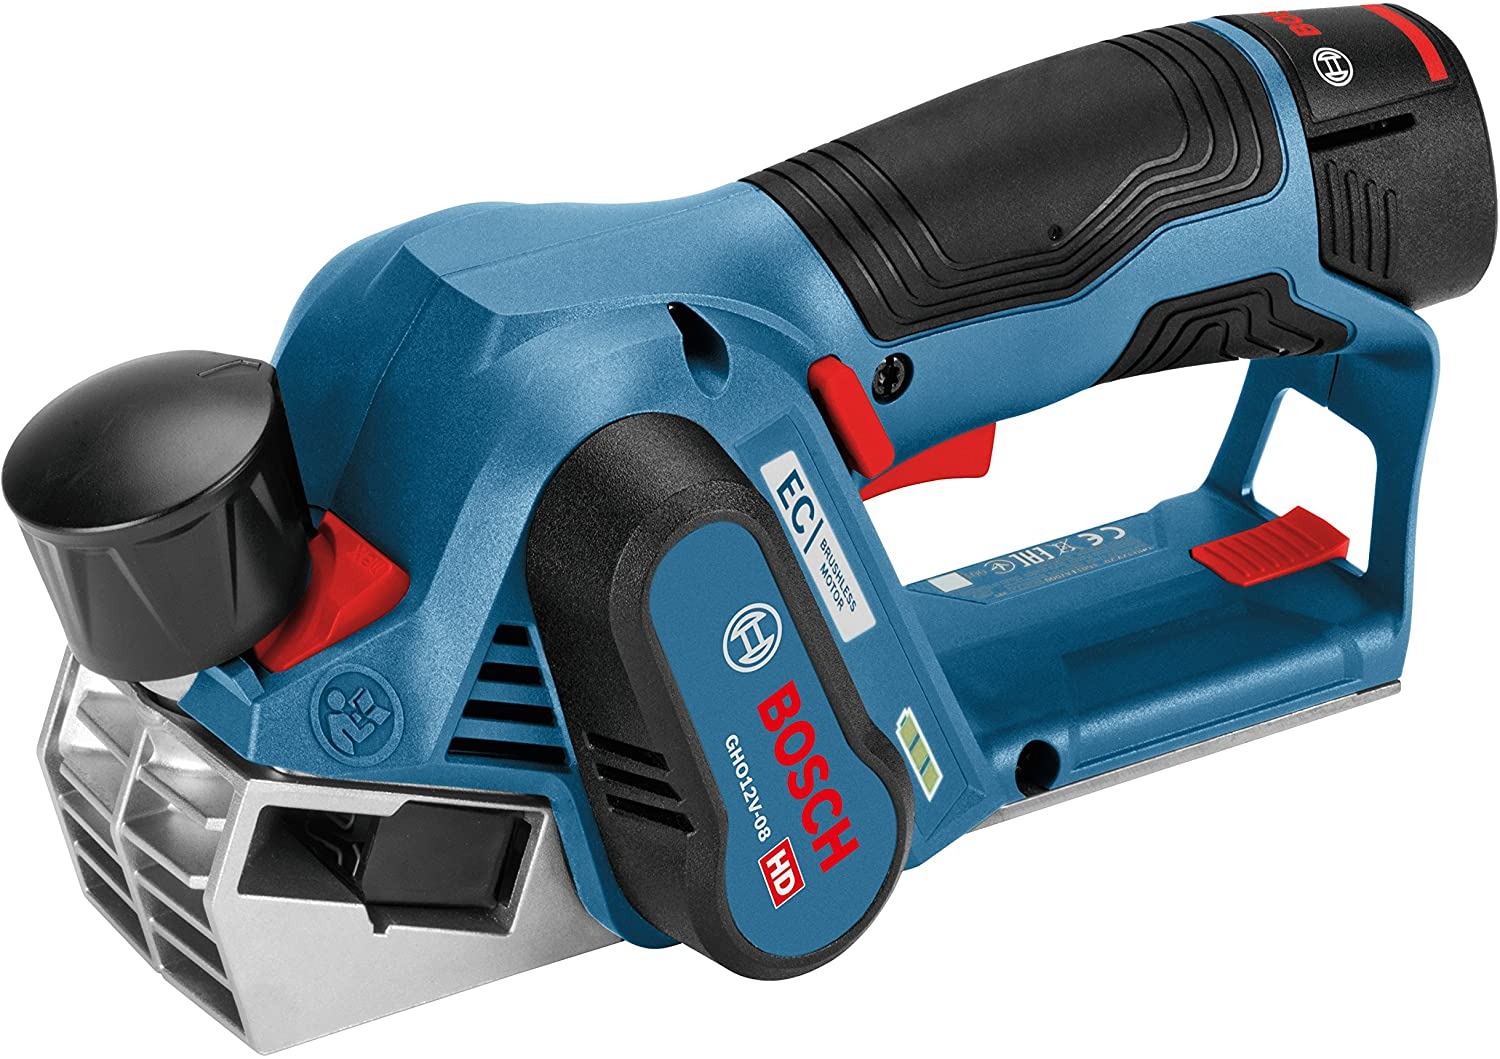 Bosch GHO12V-08N featured image